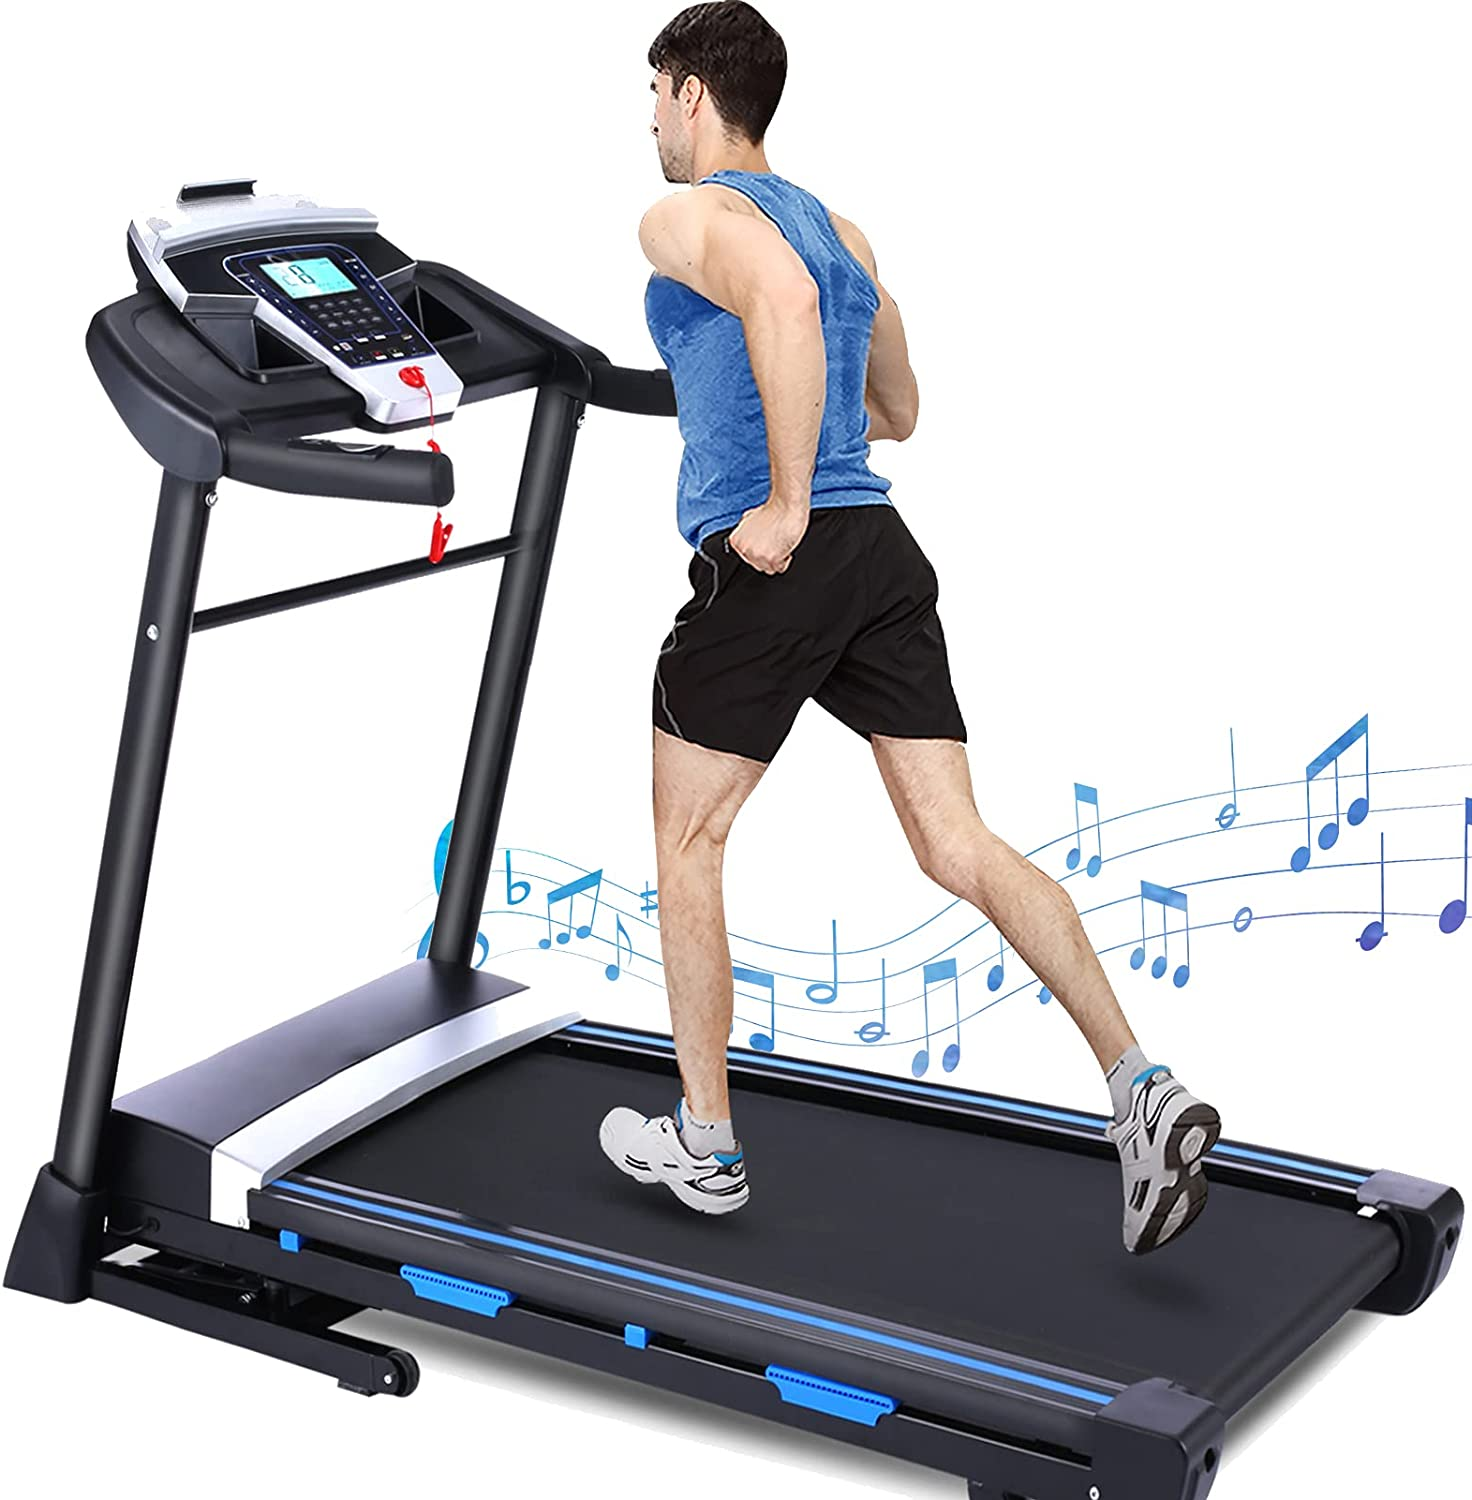 FUNMILY Treadmill with Automatic Incline Capaci San Antonio Mall lbs Bargain sale 300 Weight